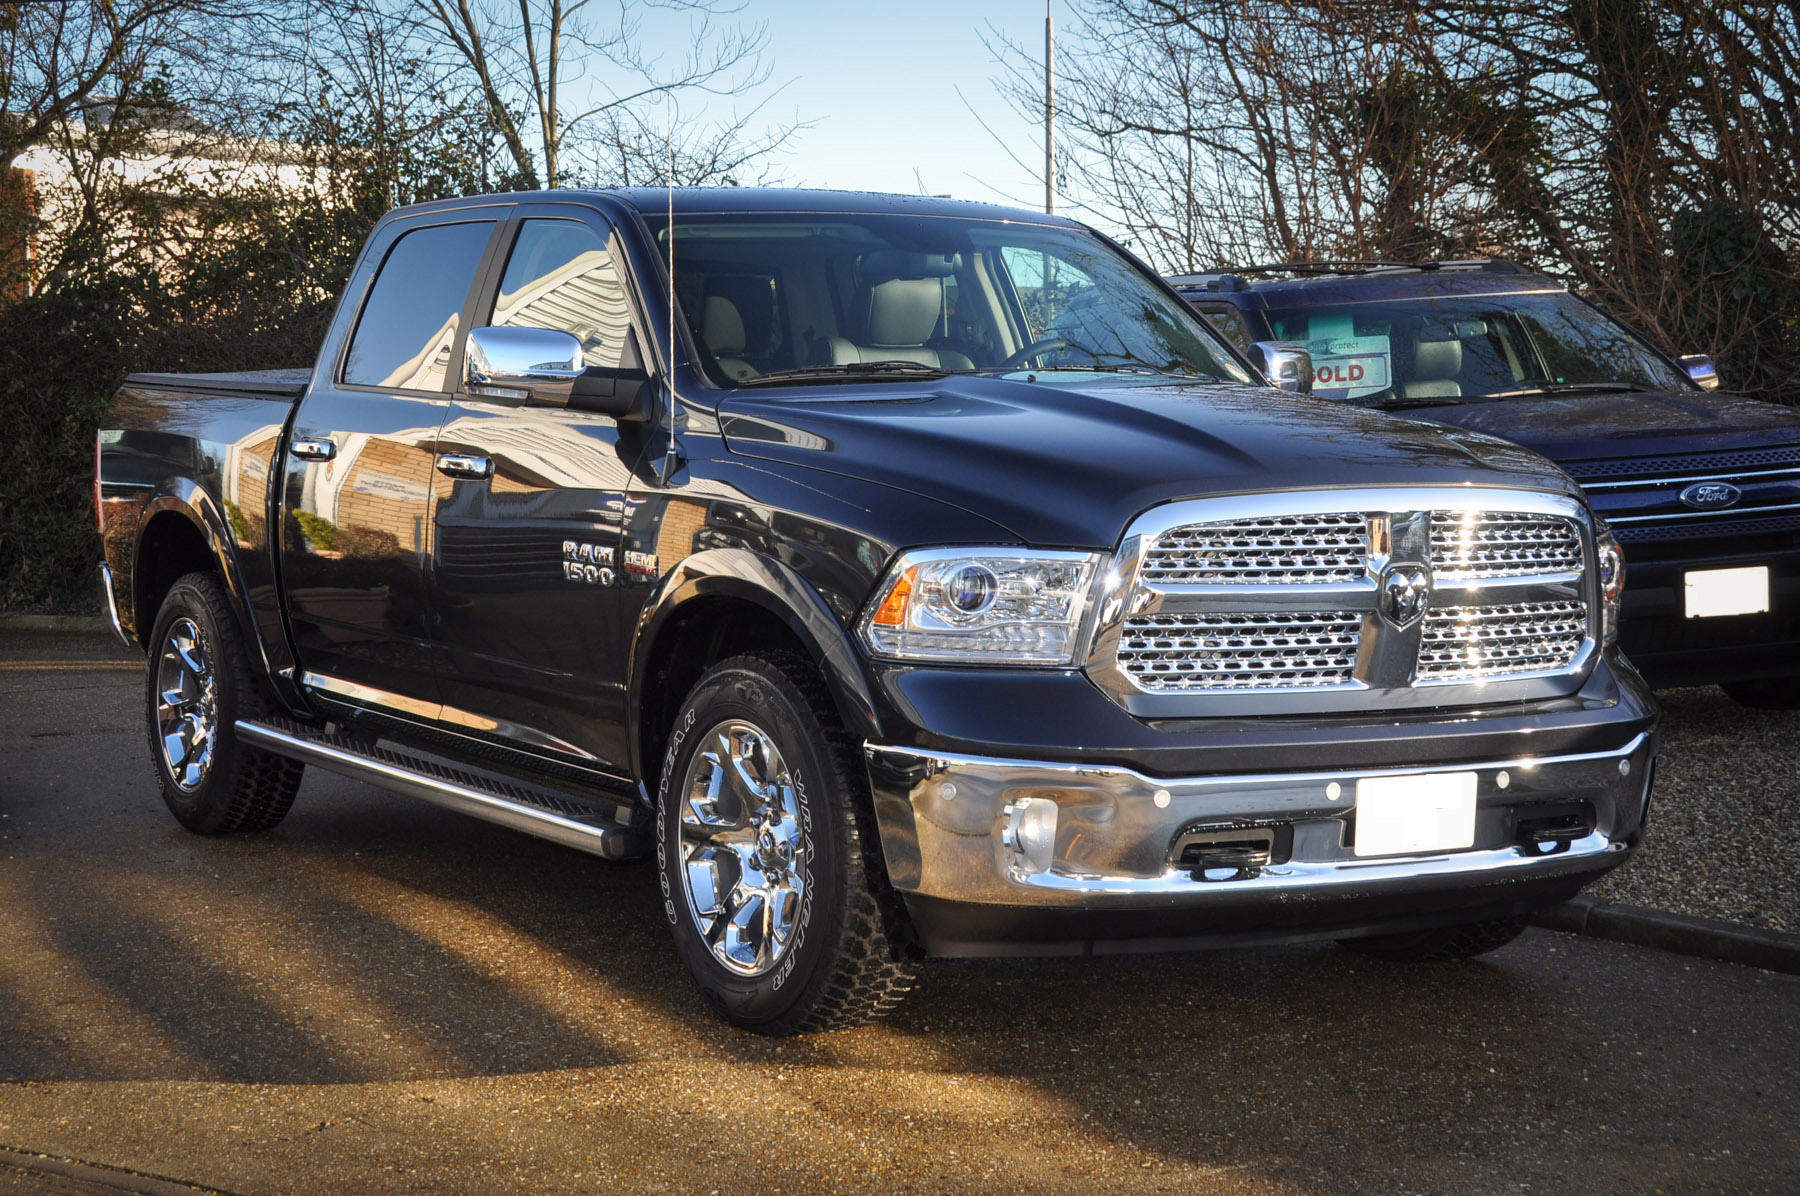 New Dodge Ram Laramie Black